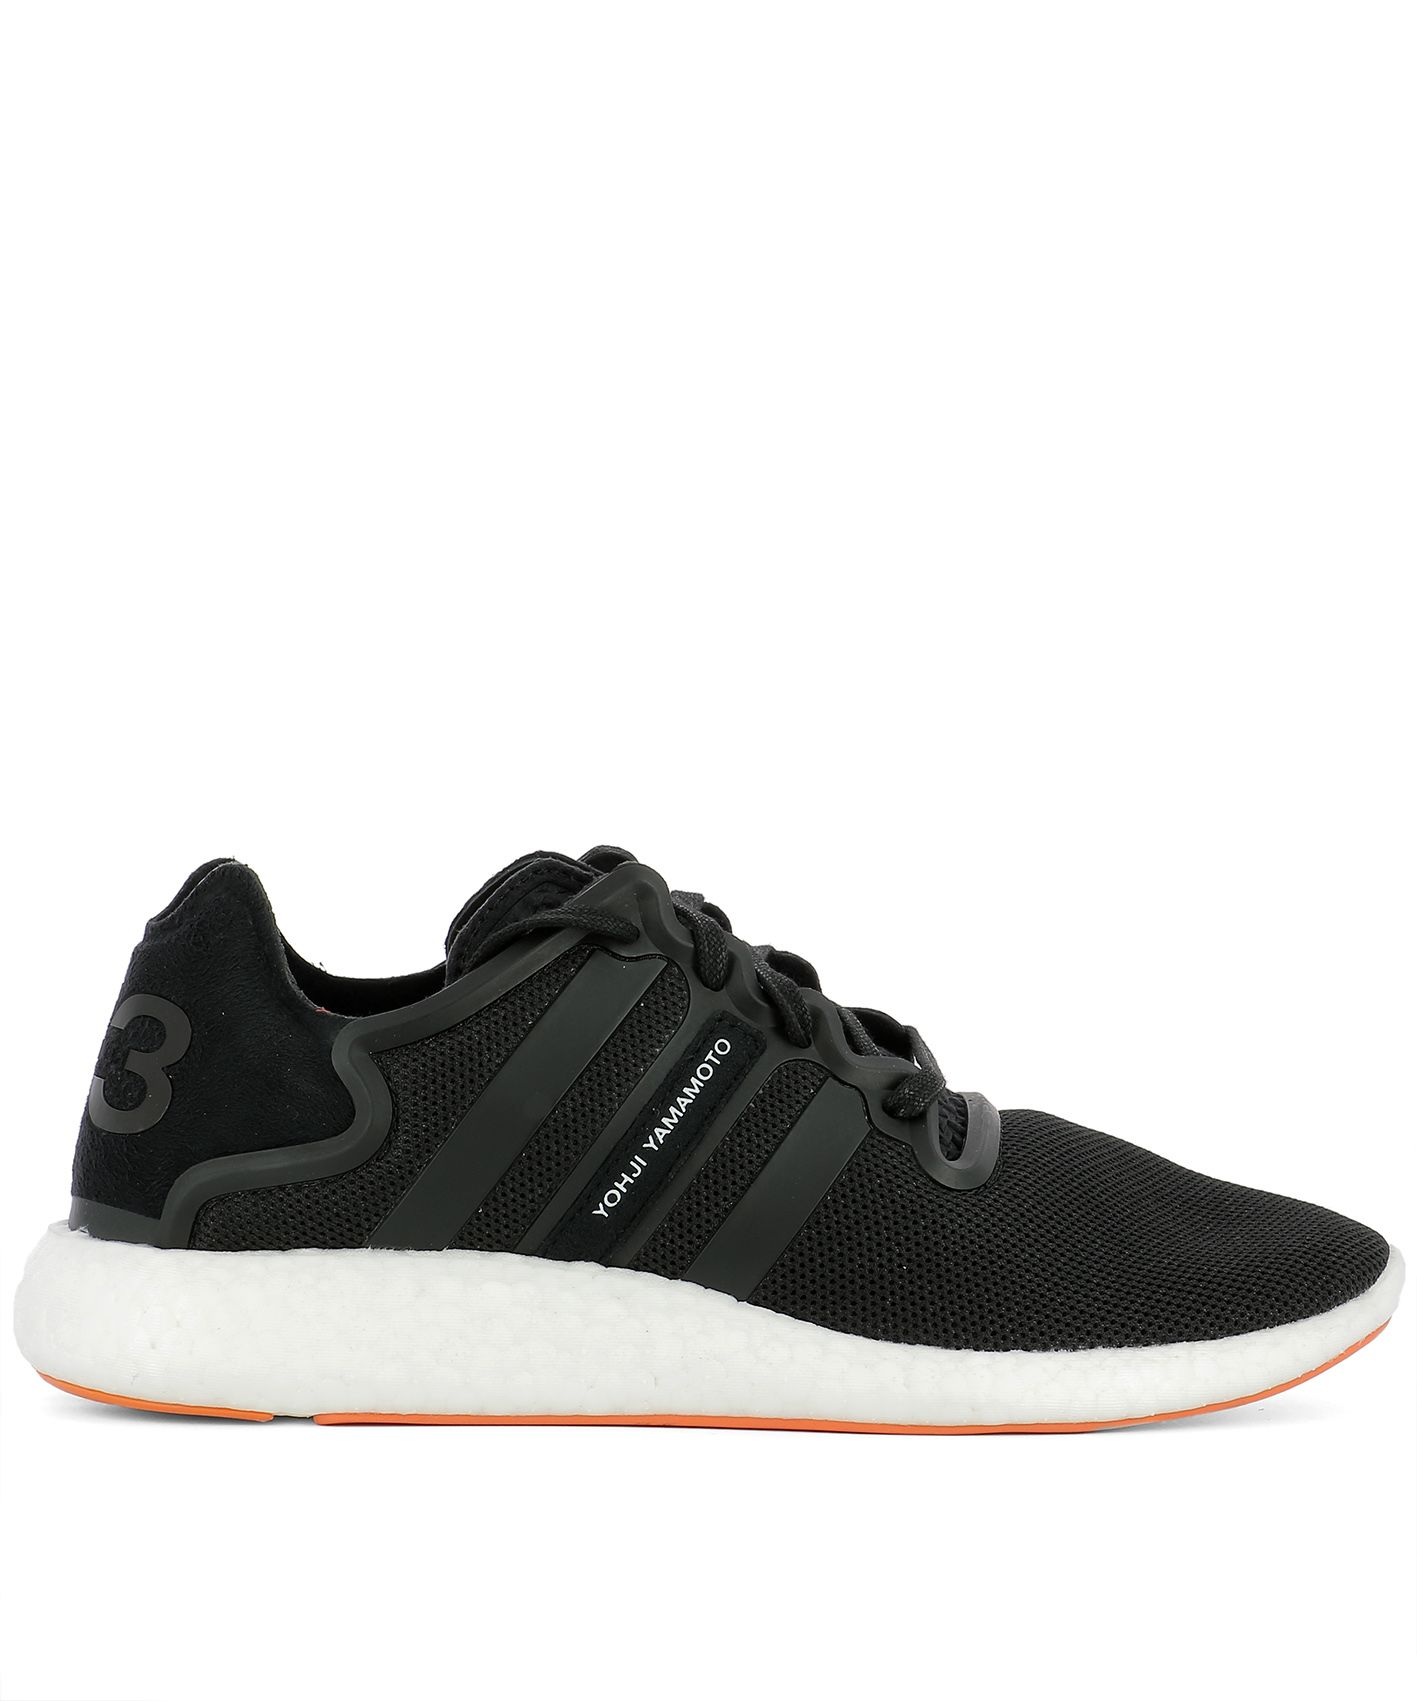 Black Fabric Yohji Run Sneakers